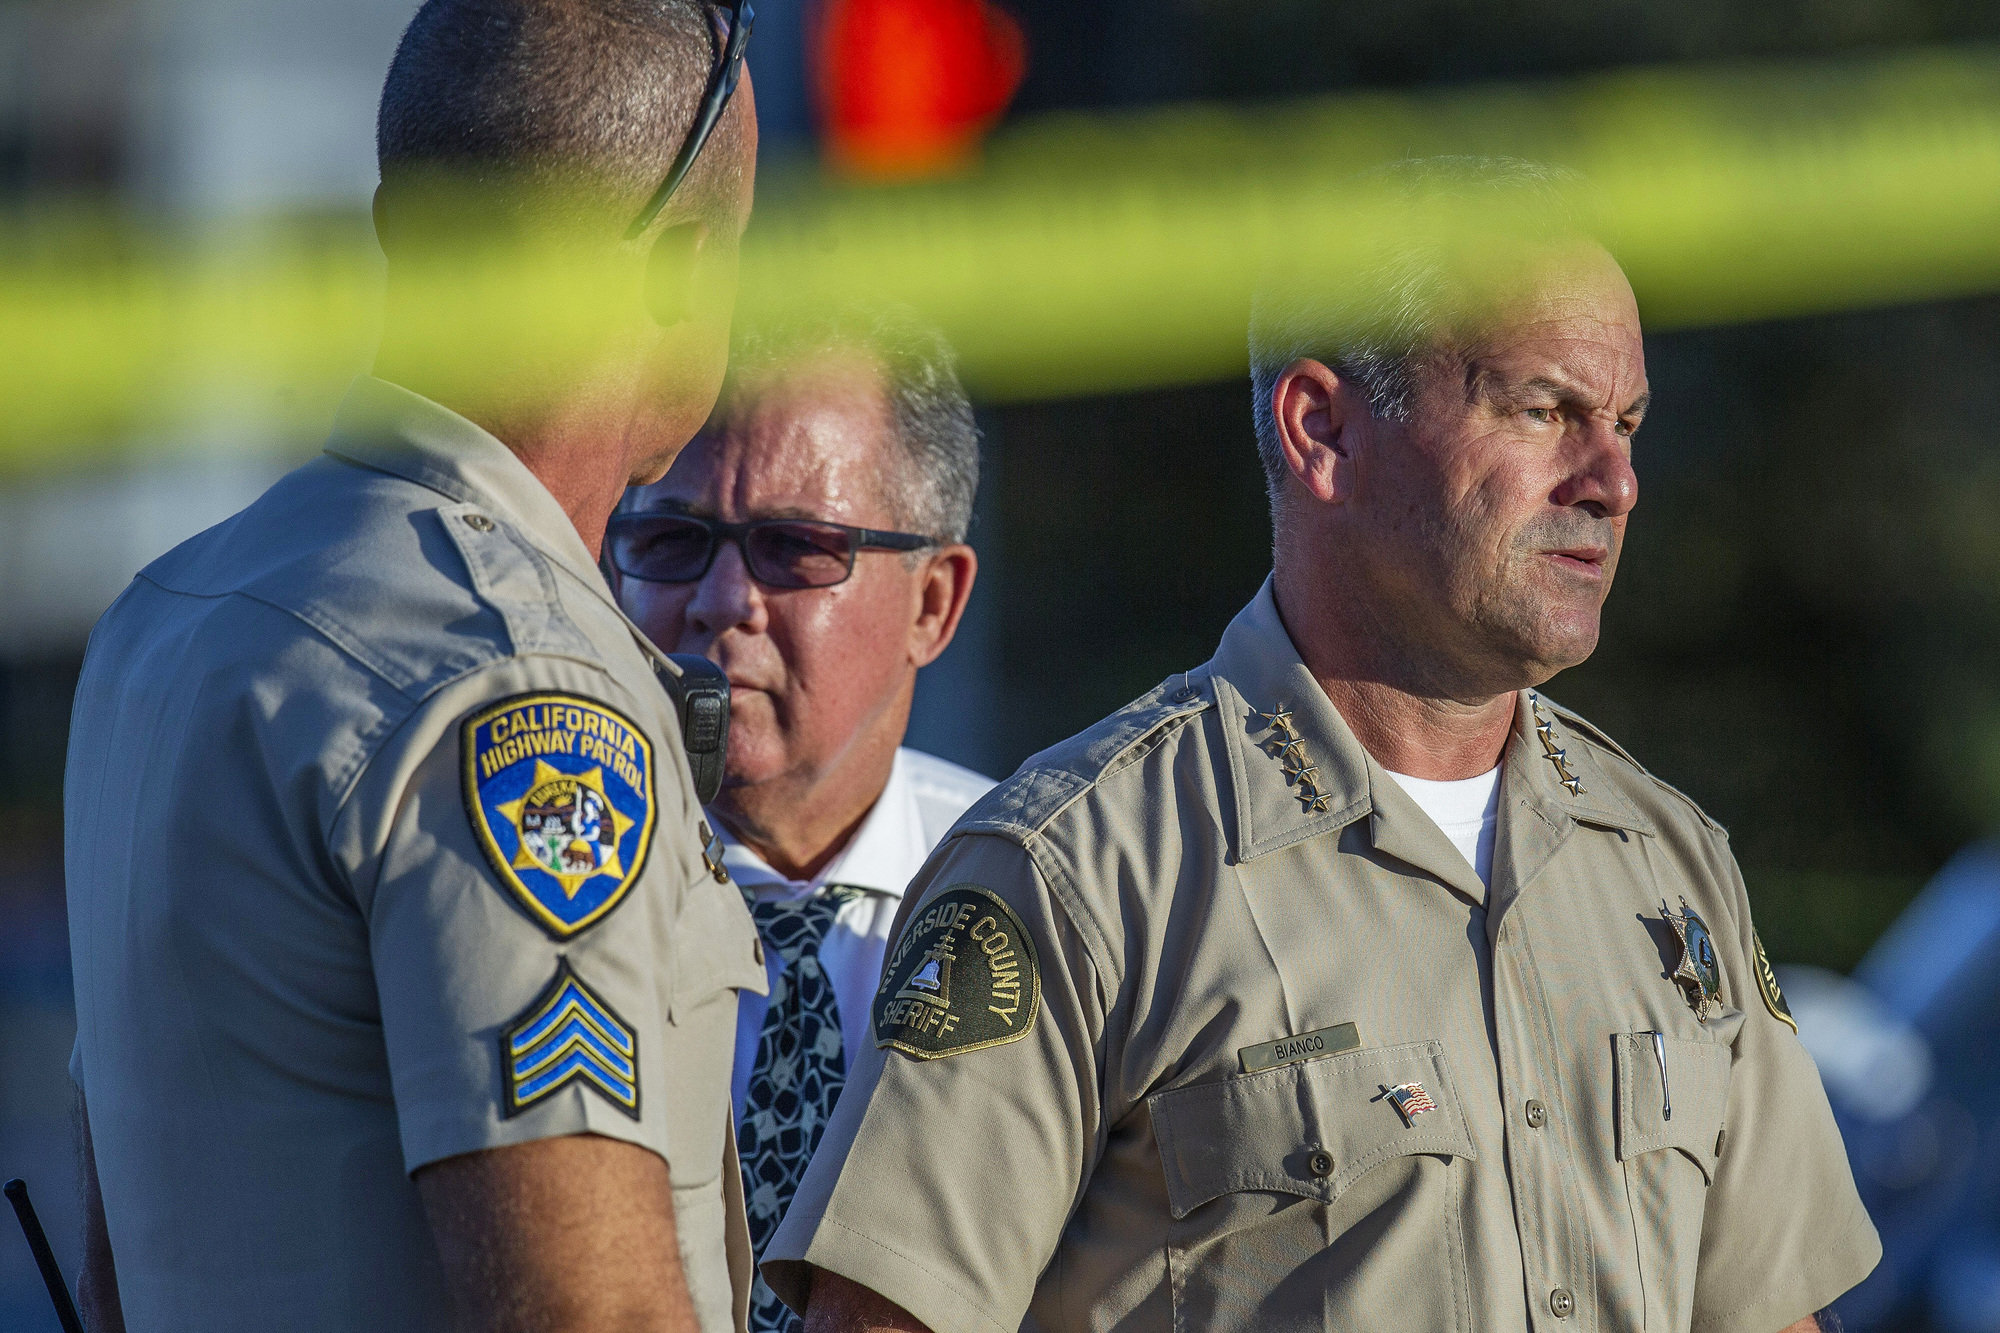 Riverside County Sheriff Chad Bianco, right, at a crime scene in Riverside, Calif., in 2019.